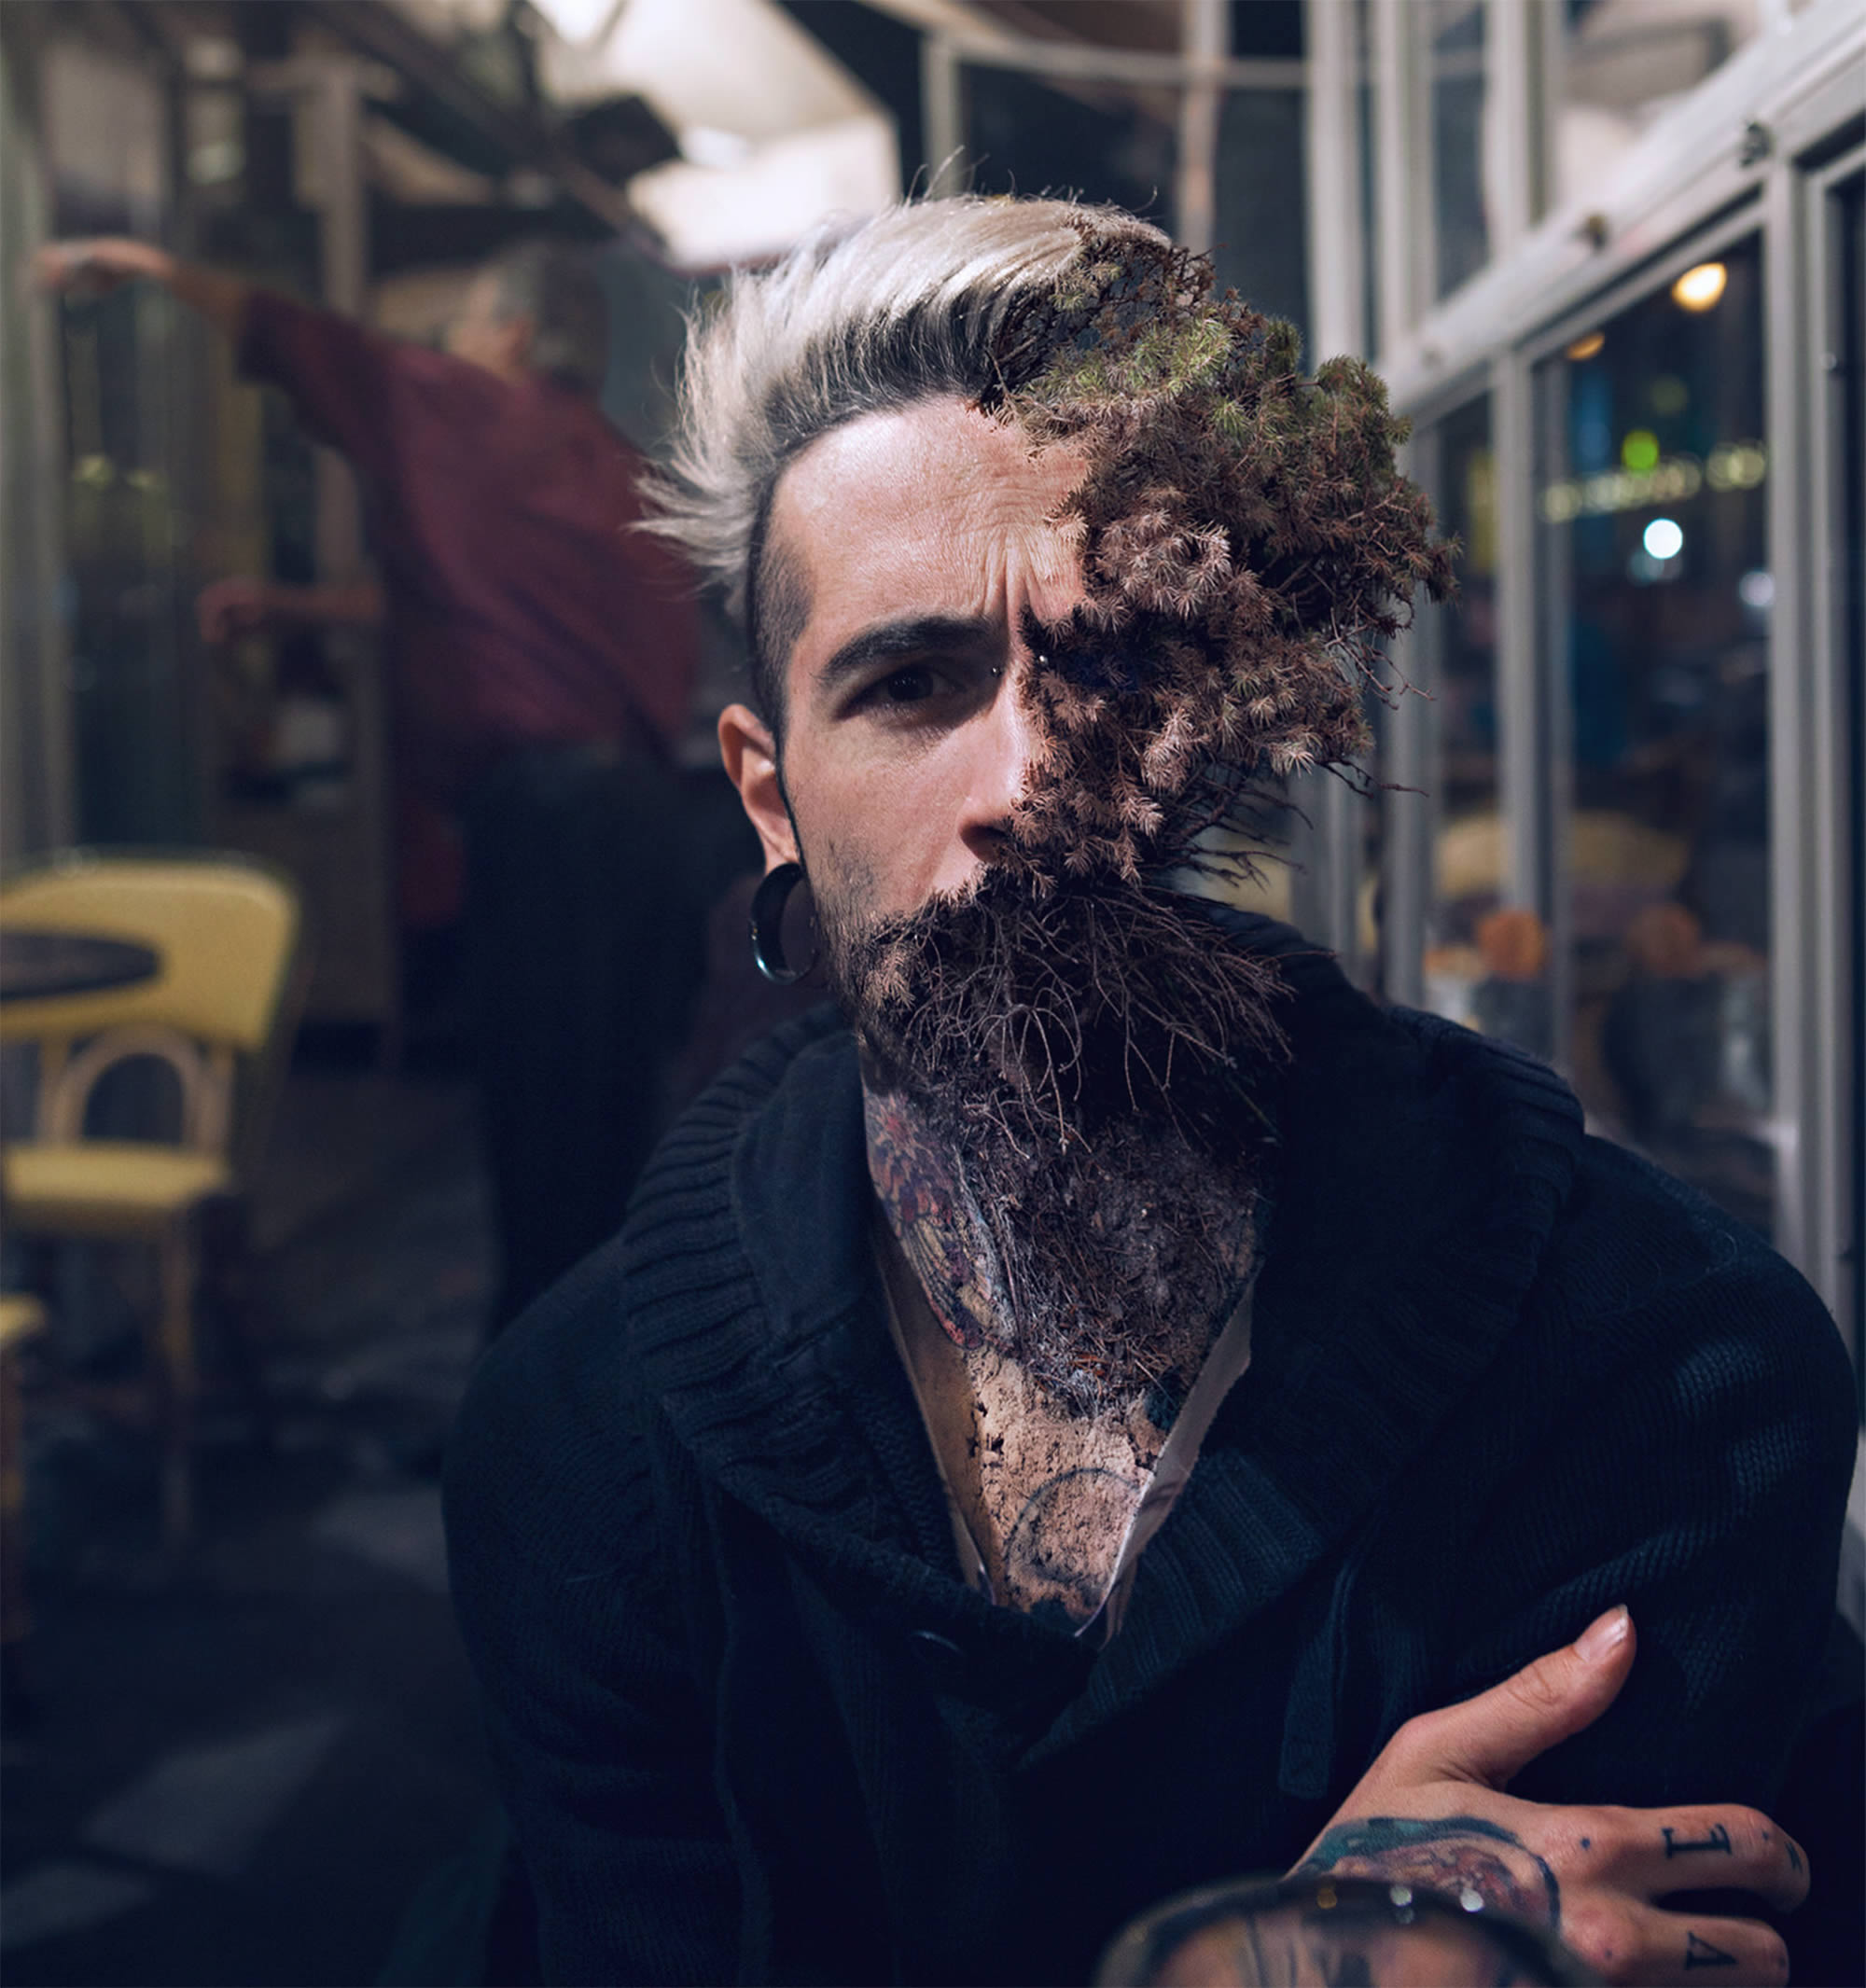 man in subway, treebeard by Cal Redback